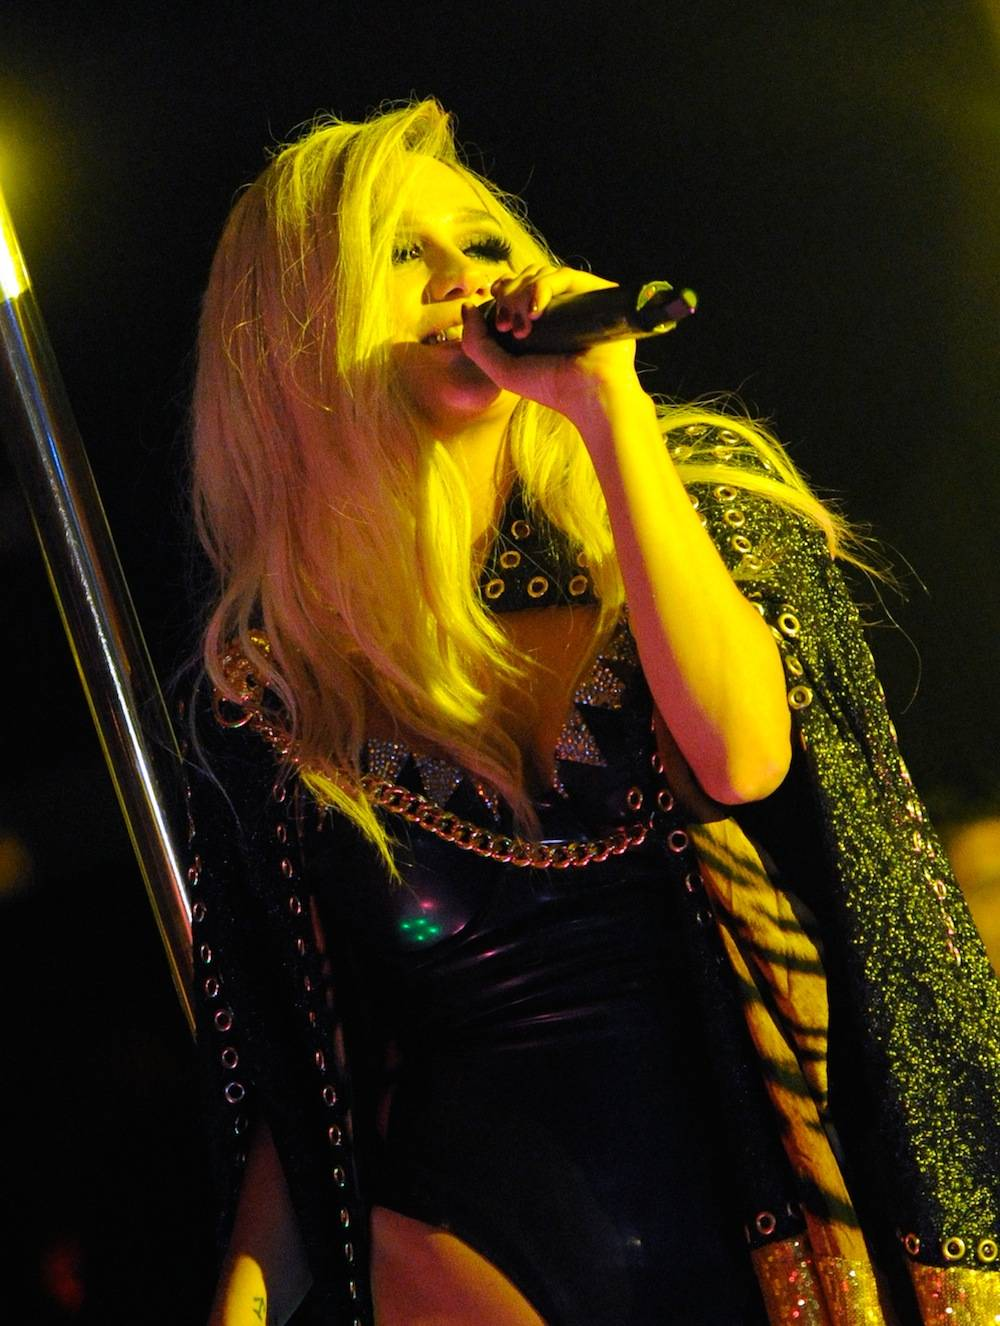 Superstar Singer Ke$ha Gives A Special Labor Day Weekend Performance At 1 OAK Nightclub At The Mirage